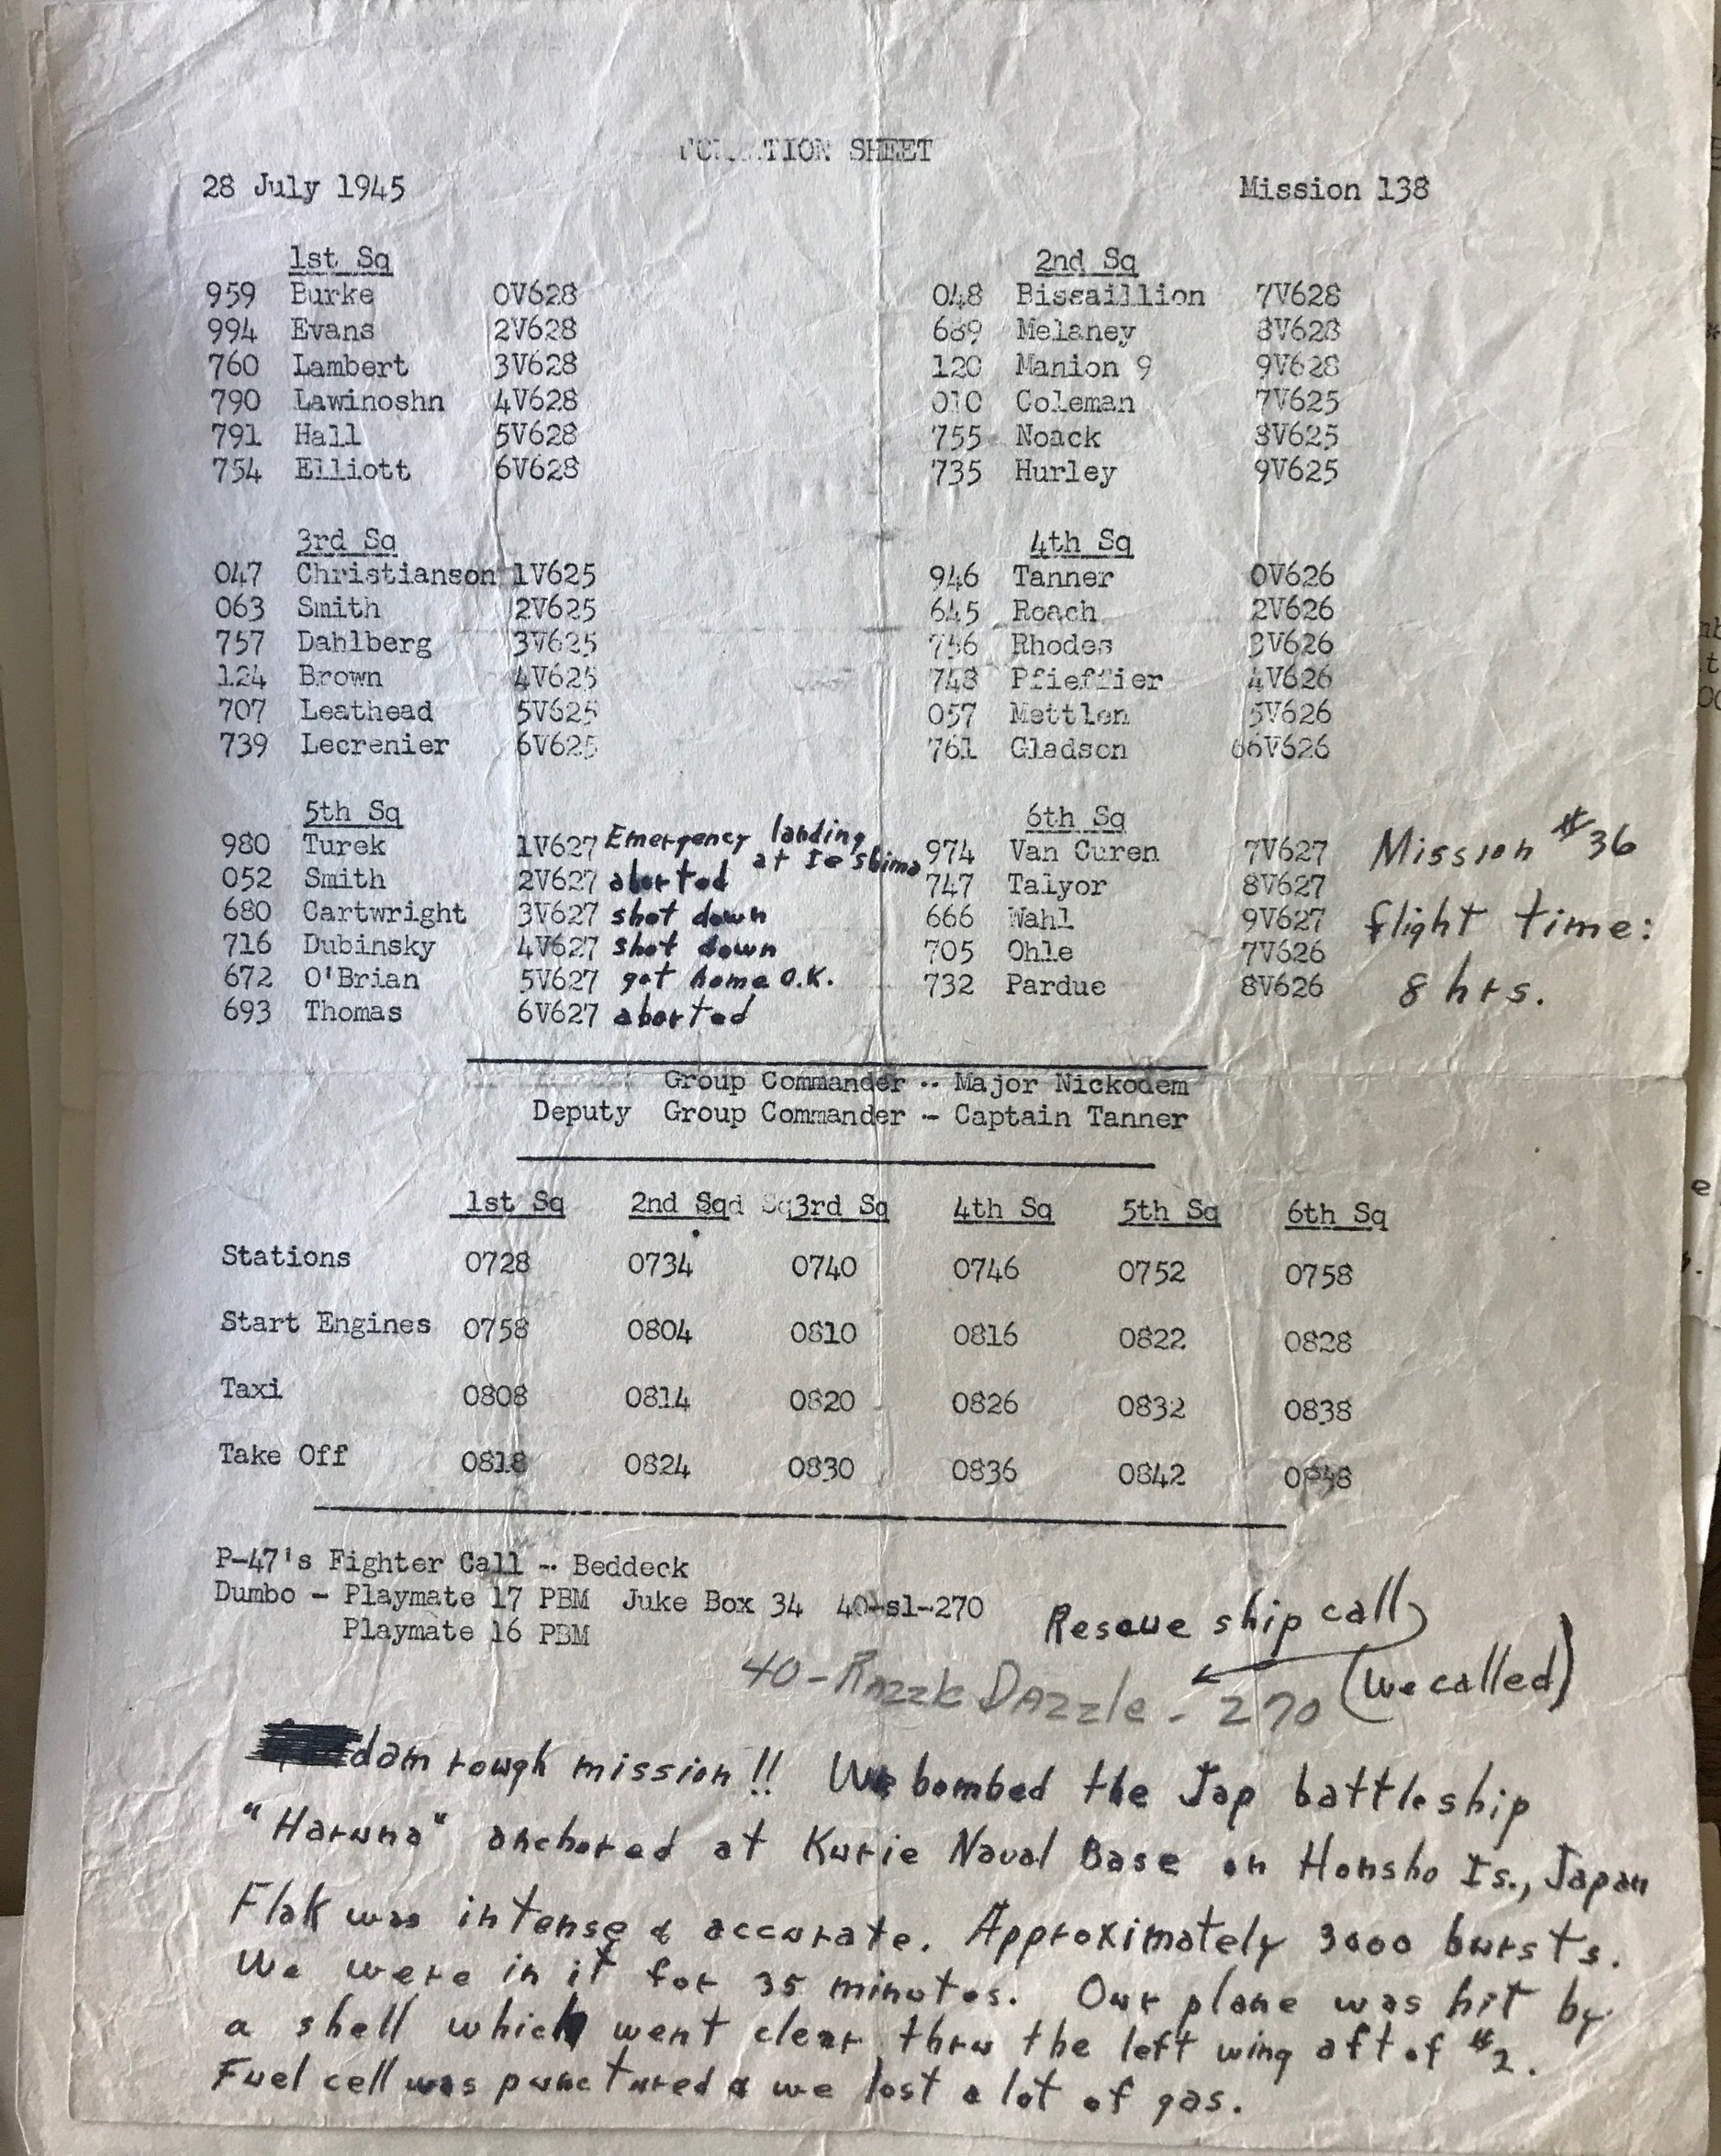 This formation sheet records Mission #138 of the 494th Bombardment Group. It includes notes from the 5th Squadron lead pilot, Emil Turek. (Courtesy Barbara English, Turek's daughter.)